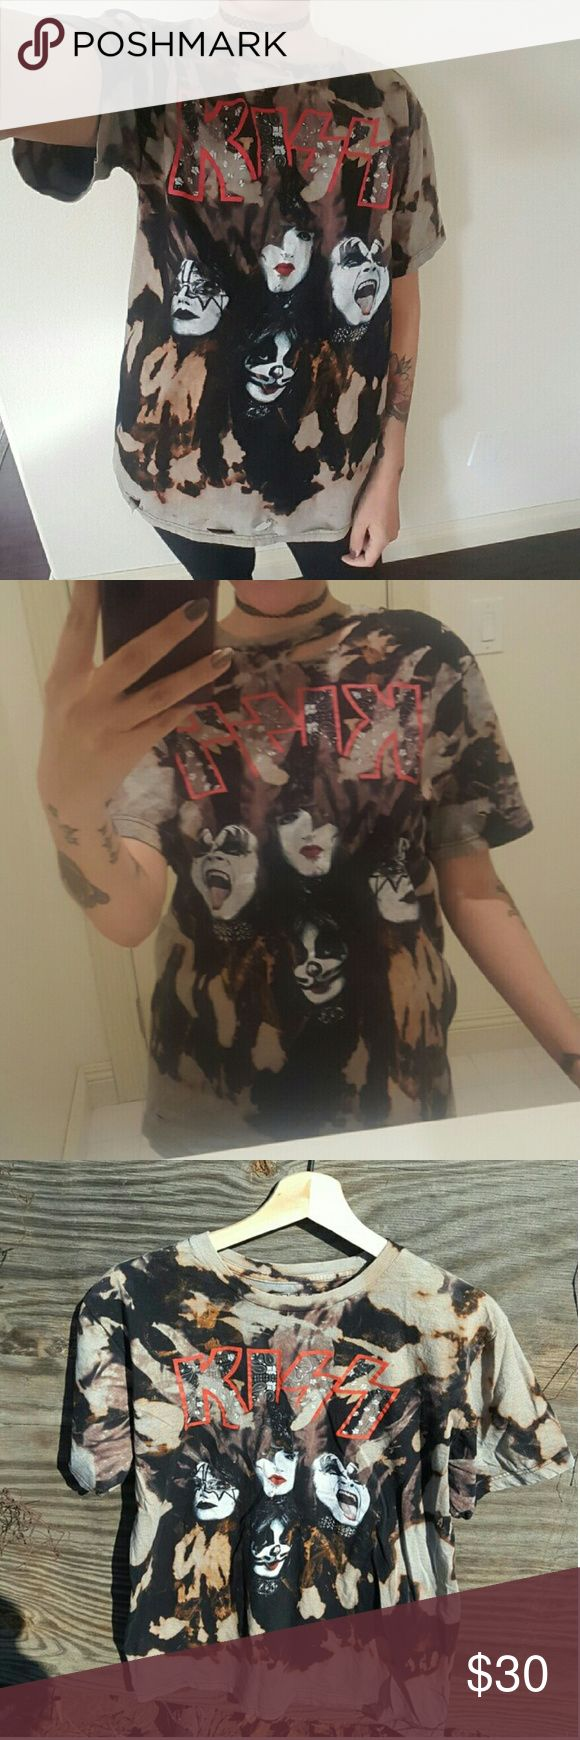 Distressed Kiss t shirt DIY Kiss tee. Bleach washed. Has small holes and tears for a distressed look! Very soft and cozy. Men's size XL, but can be worn as an oversized tee. Unisex. #kiss#rocknroll#diy#grunge#punk#cool Shirts Tees - Short Sleeve